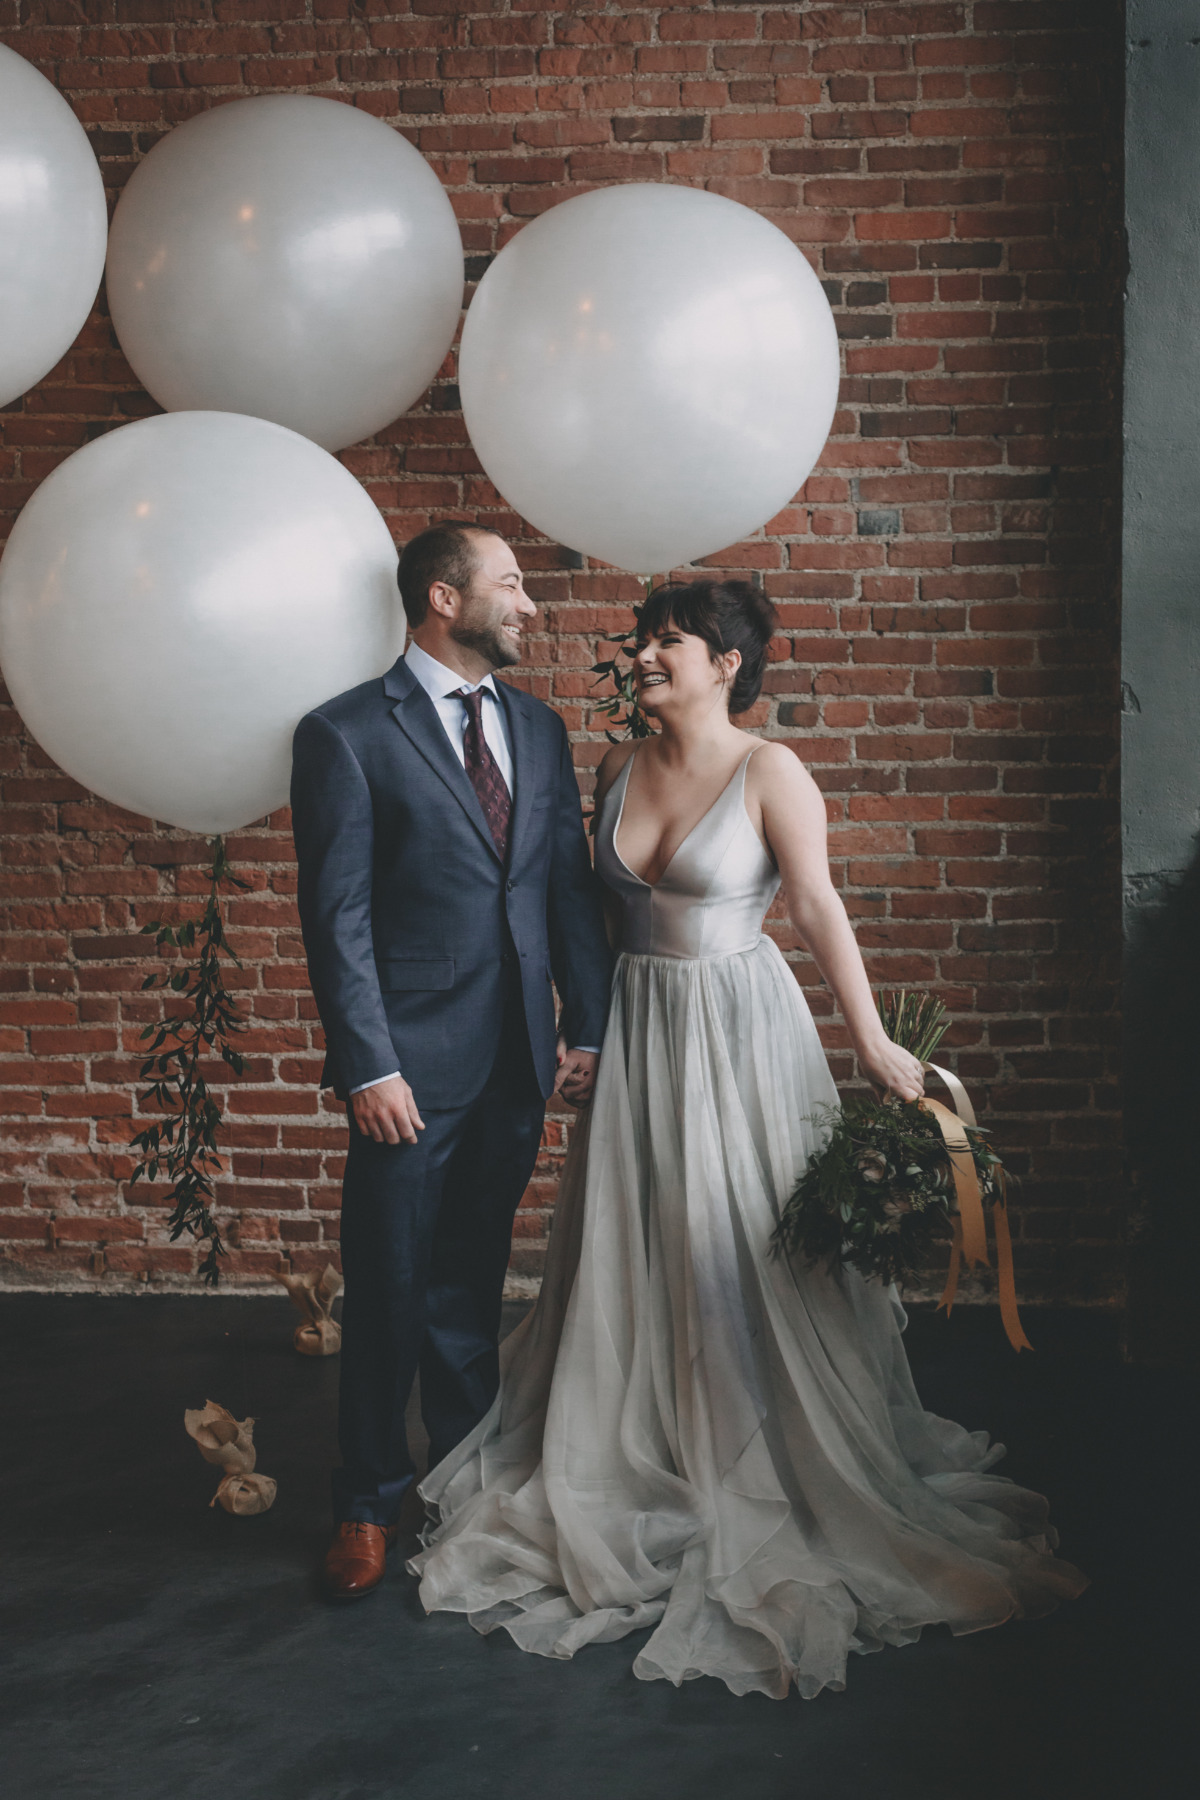 giant balloon wedding photo booth idea